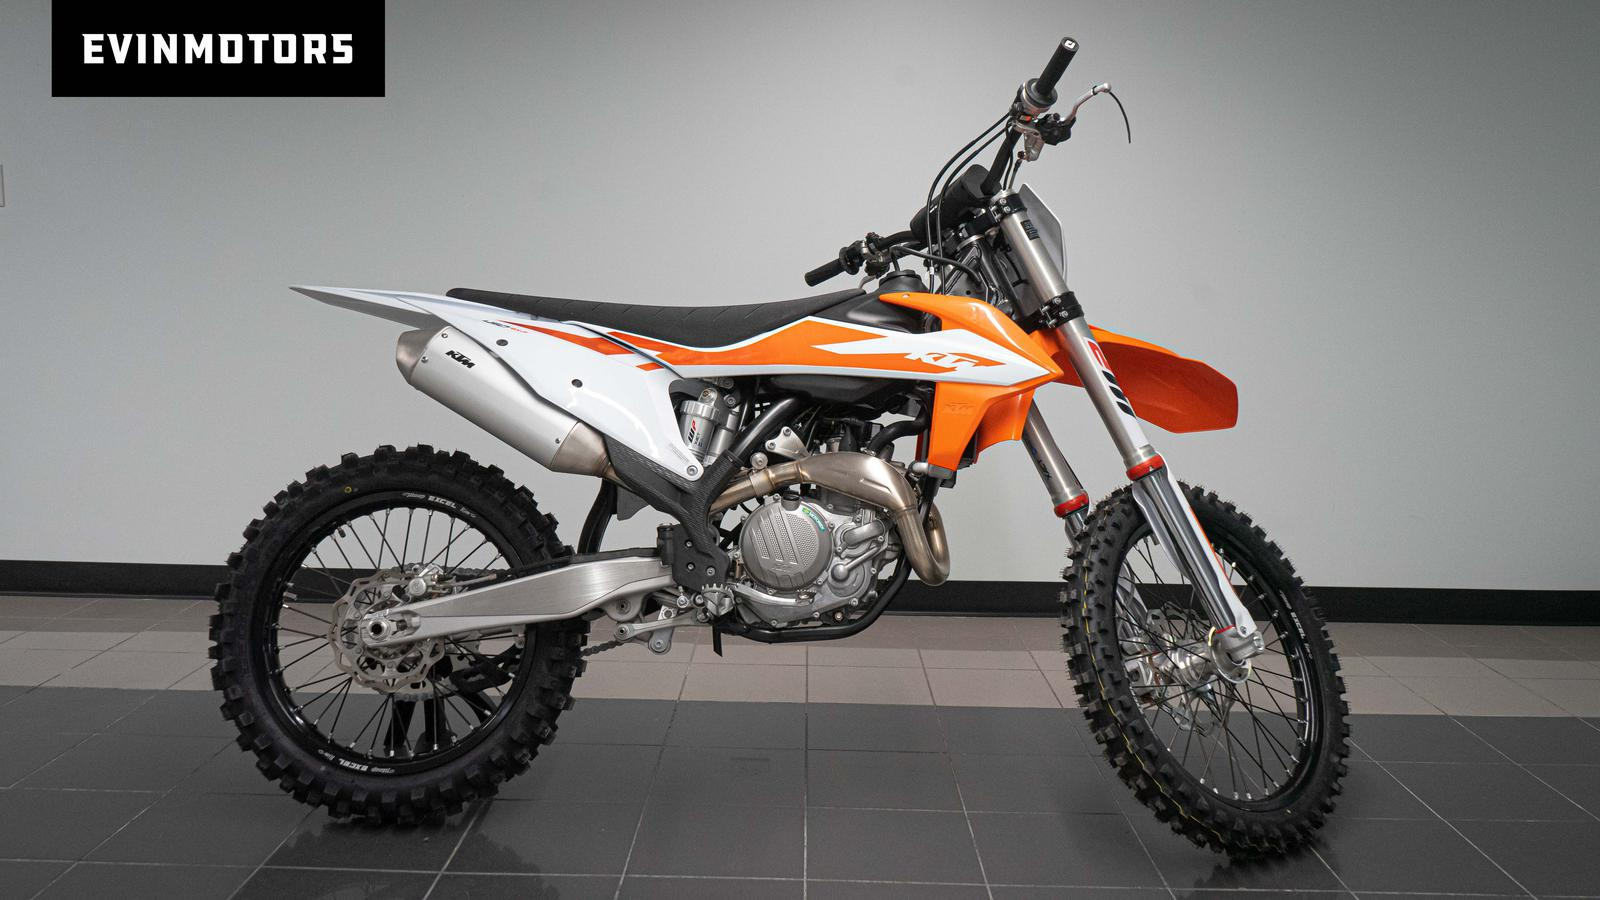 2020 Ktm 450 Sx F For Sale In San Juan Pr Evinmotors San Juan Pr 787 993 1020